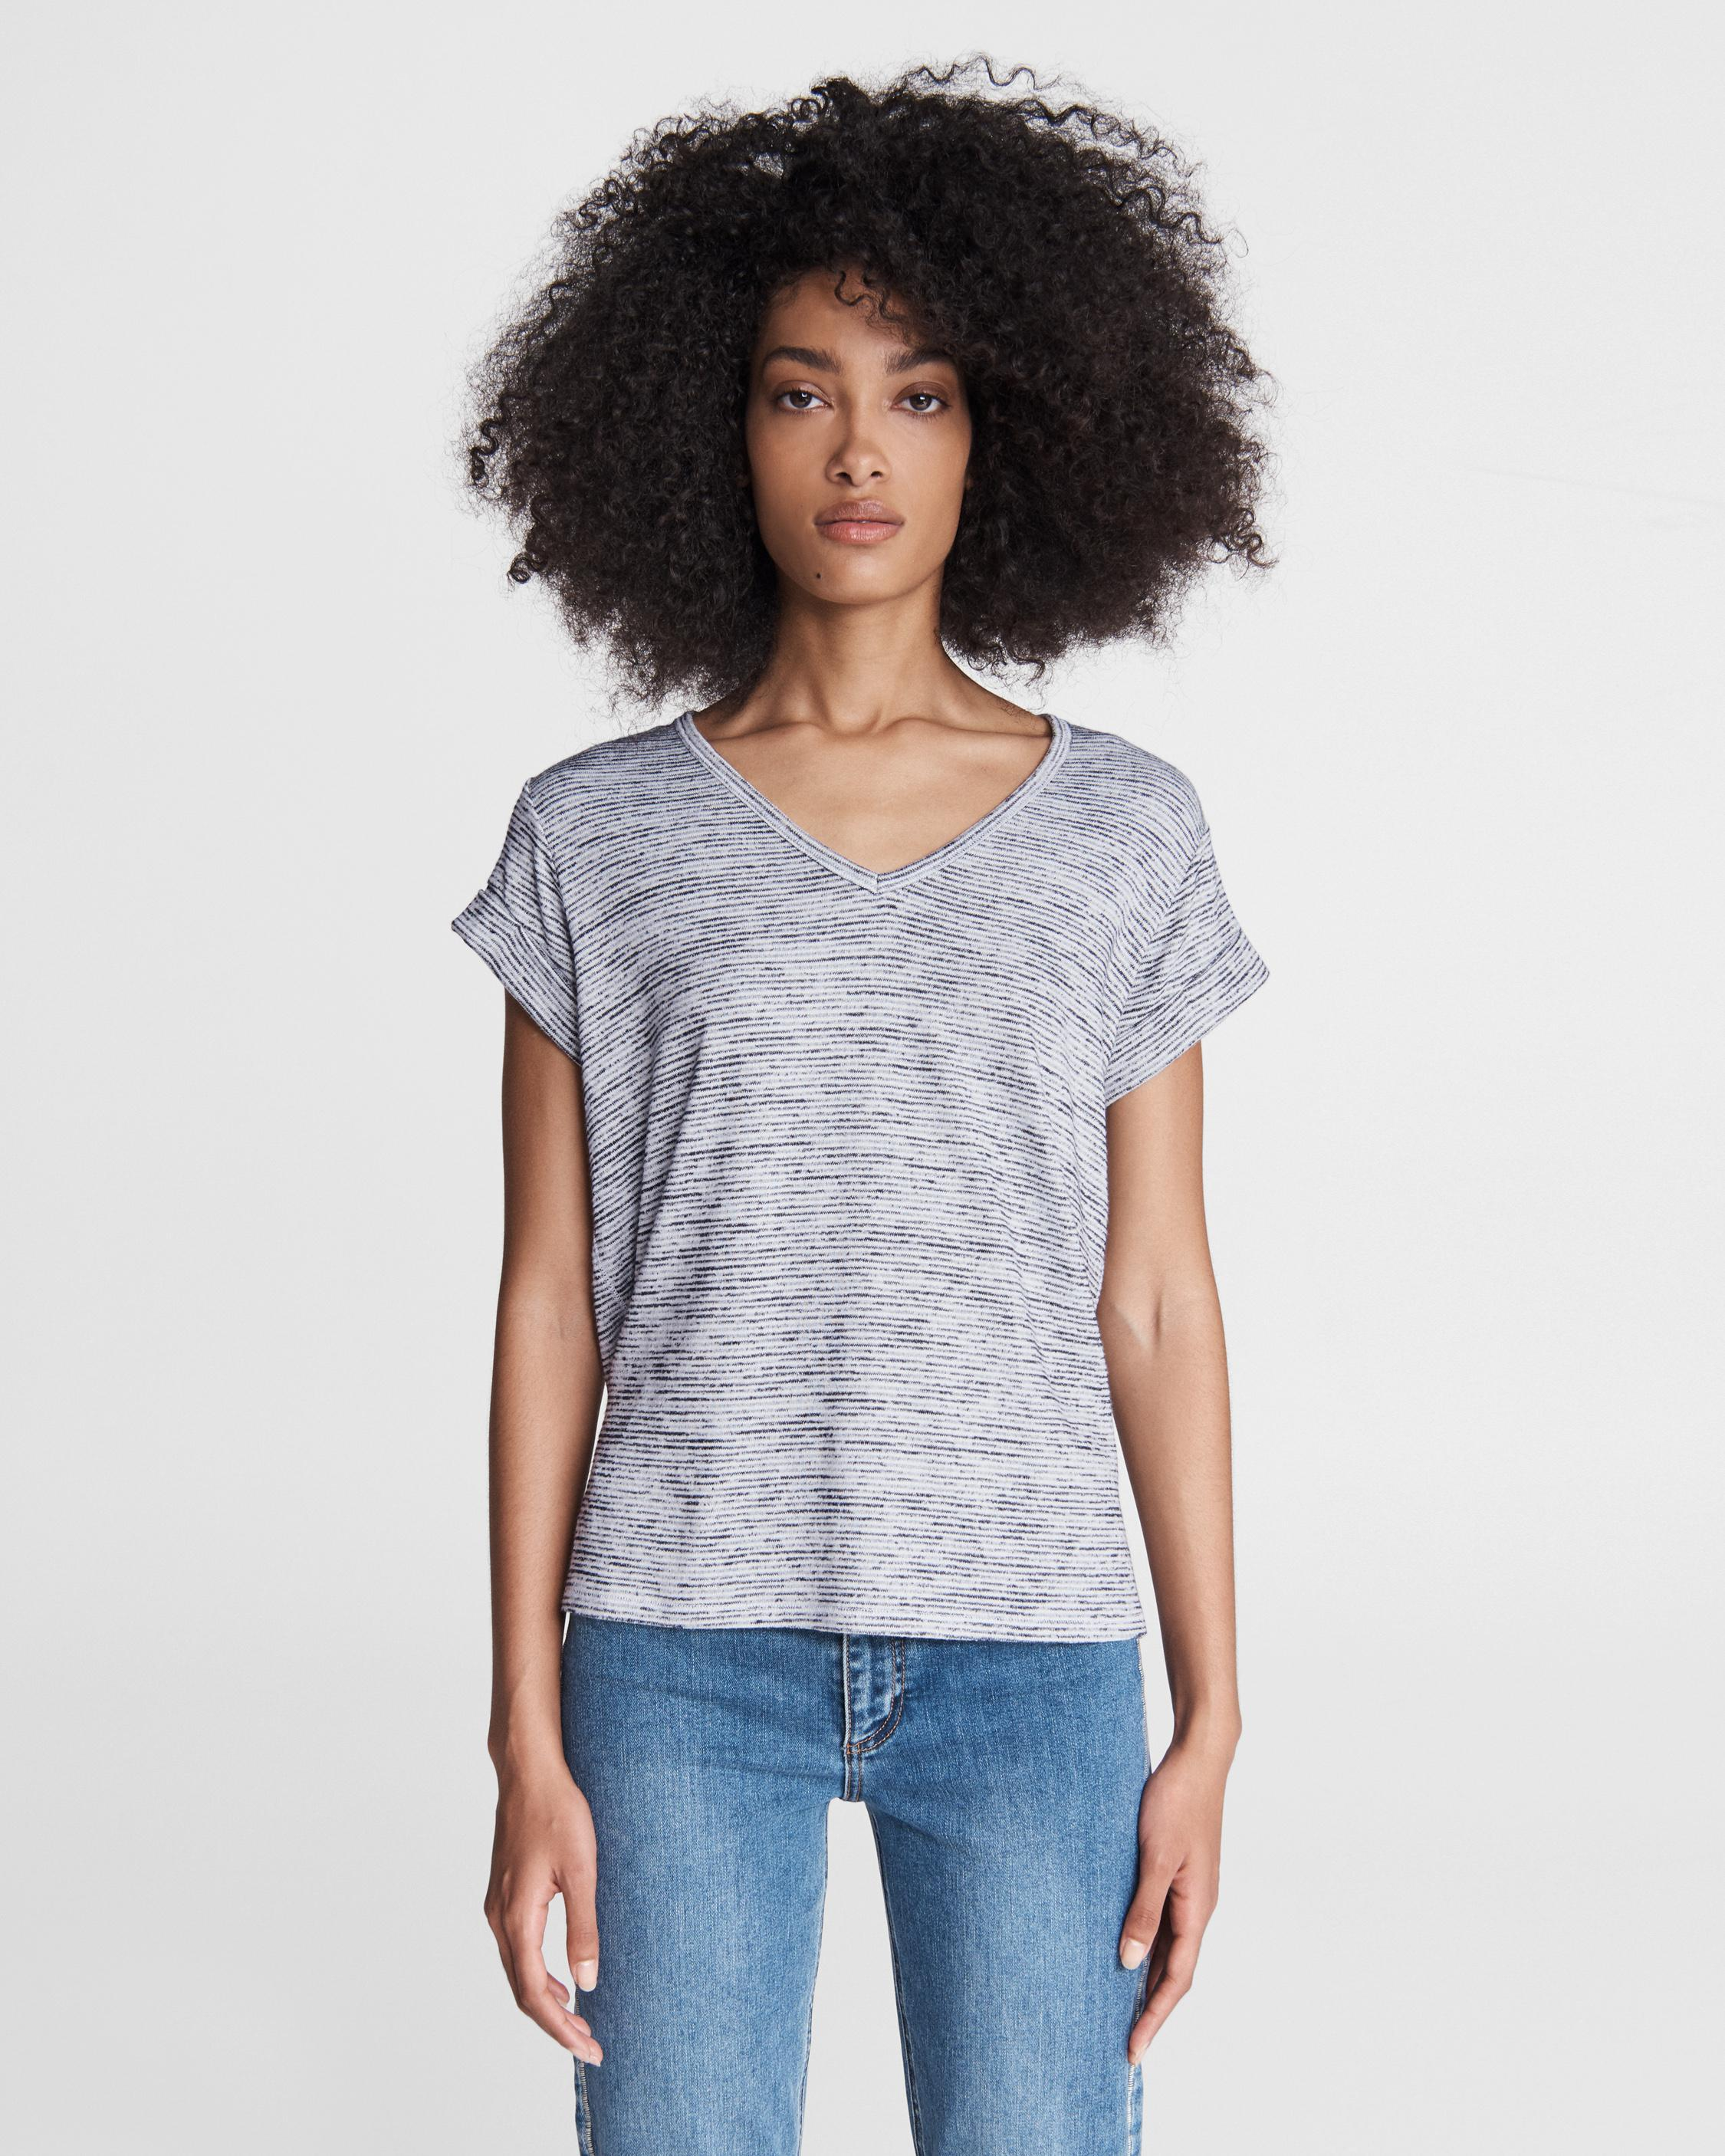 The knit v-neck striped tee